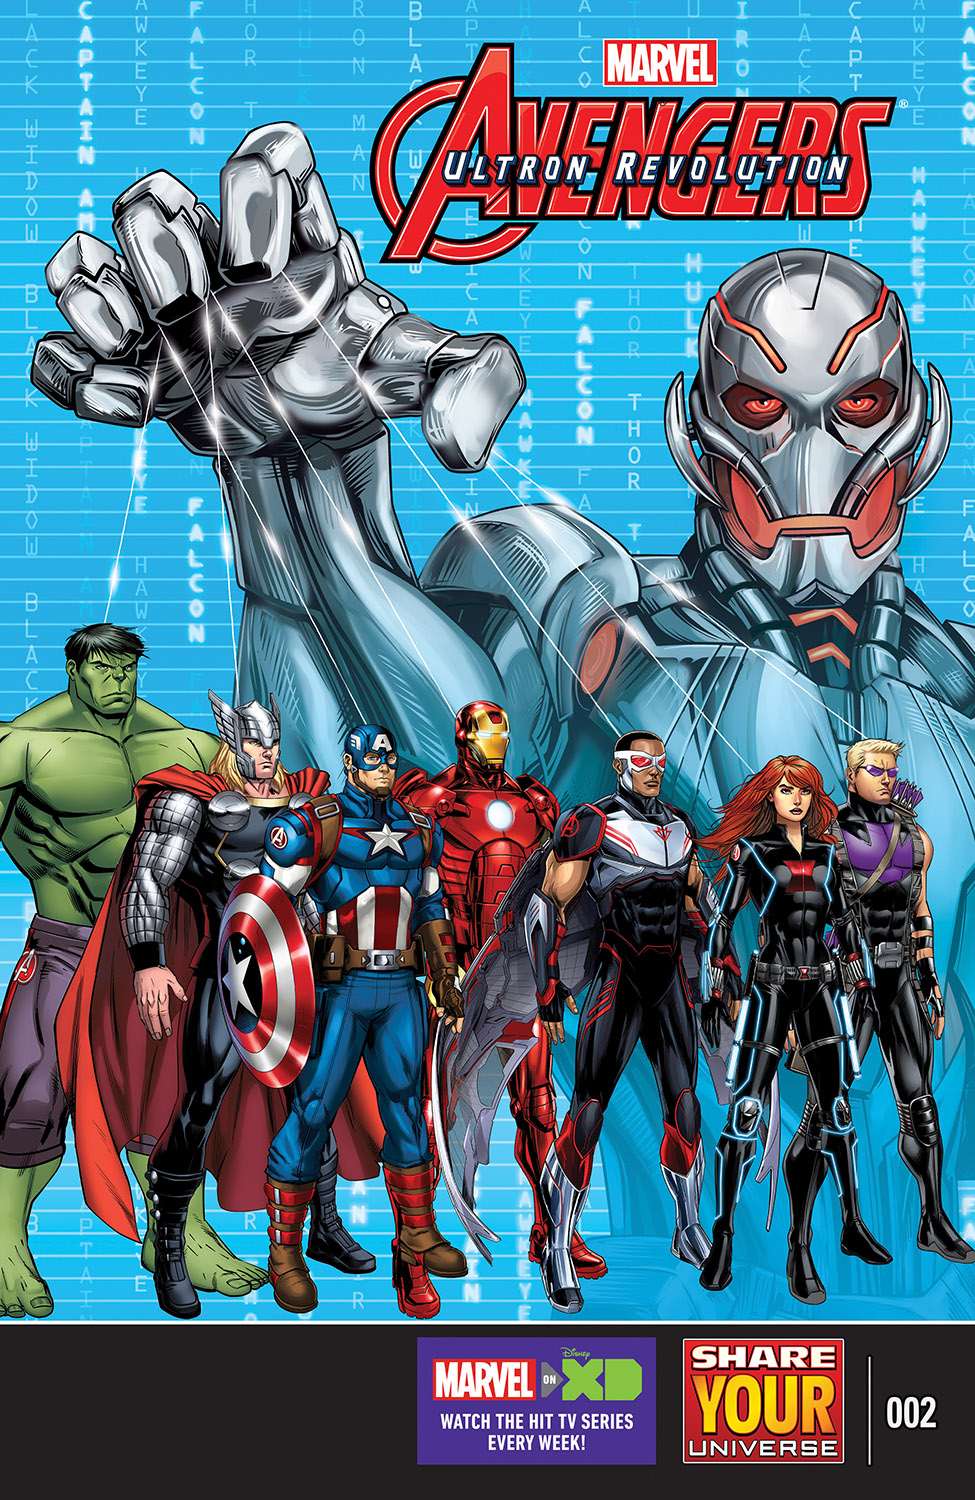 marvel avengers ultron revolution last episode